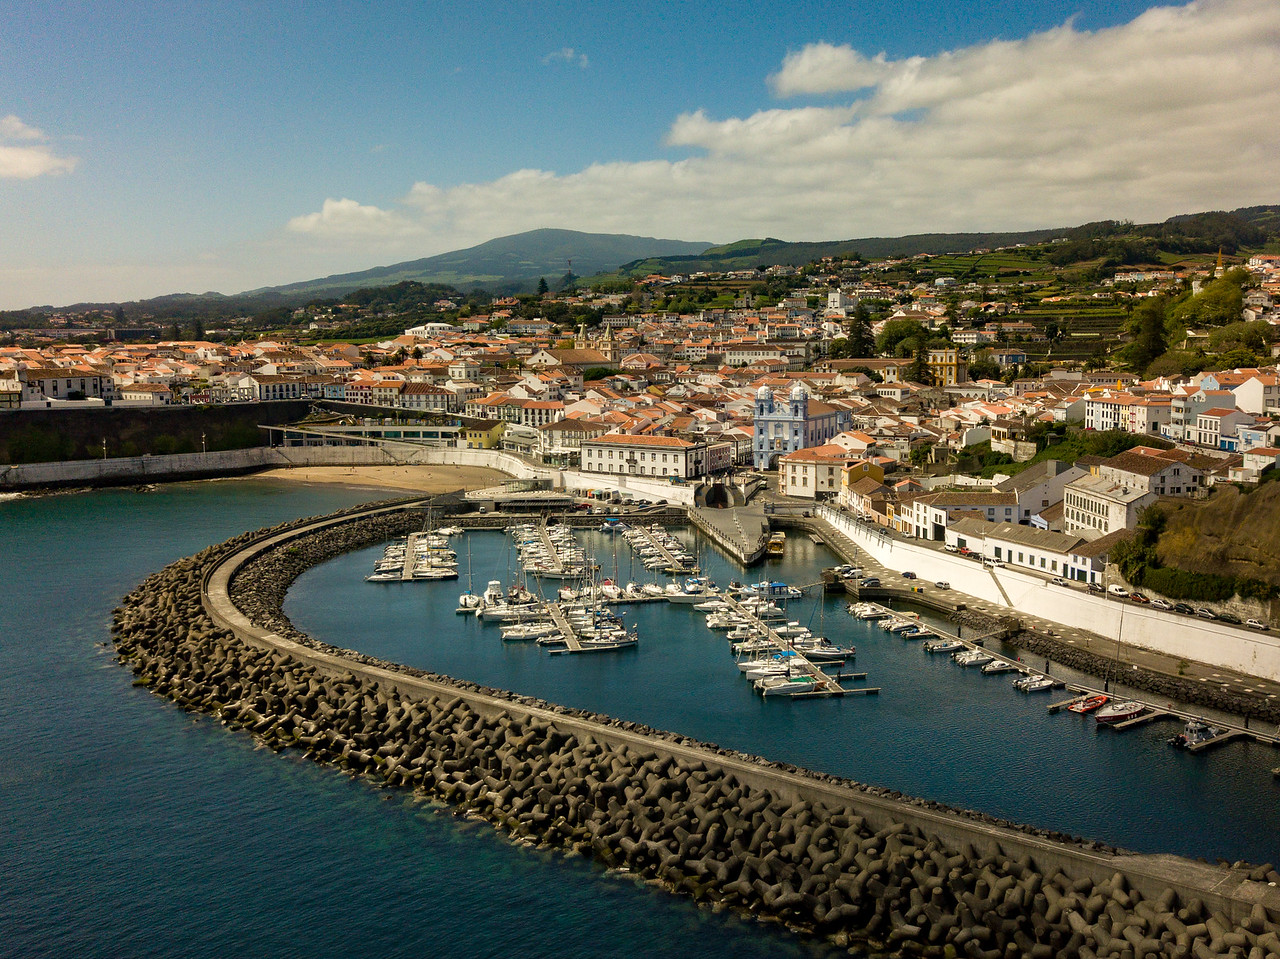 Terceira Island in the Azores